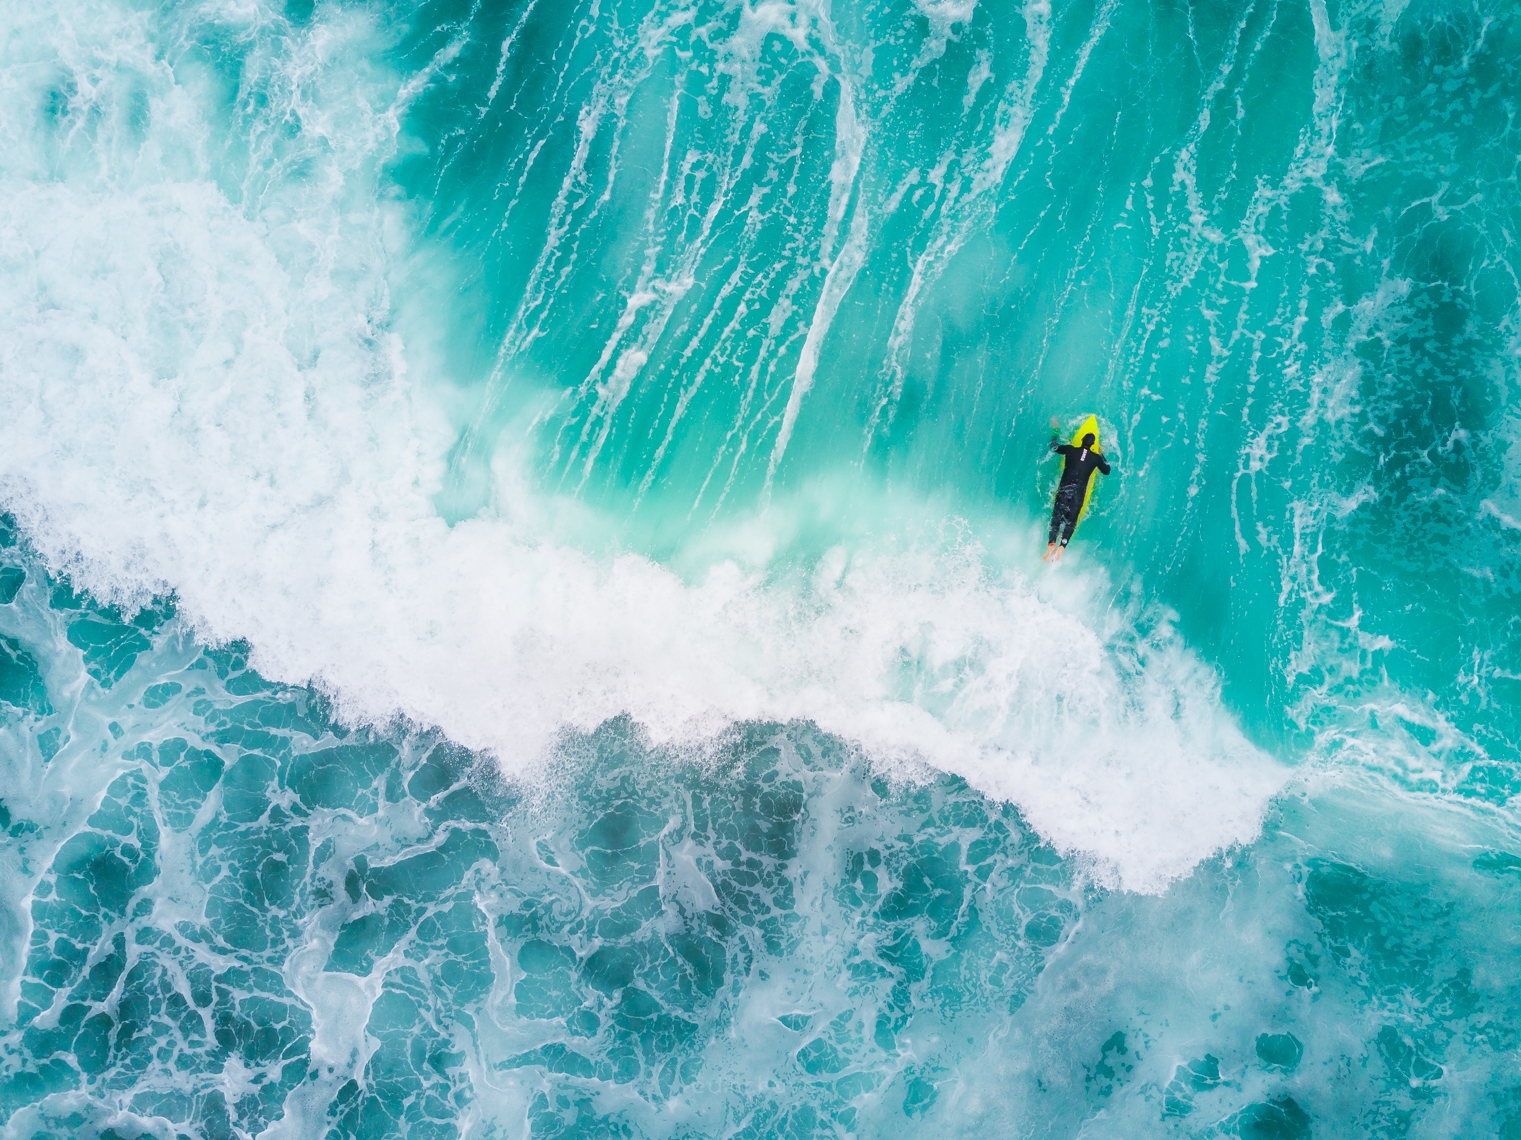 how to take the perfect photo, surfer in the water